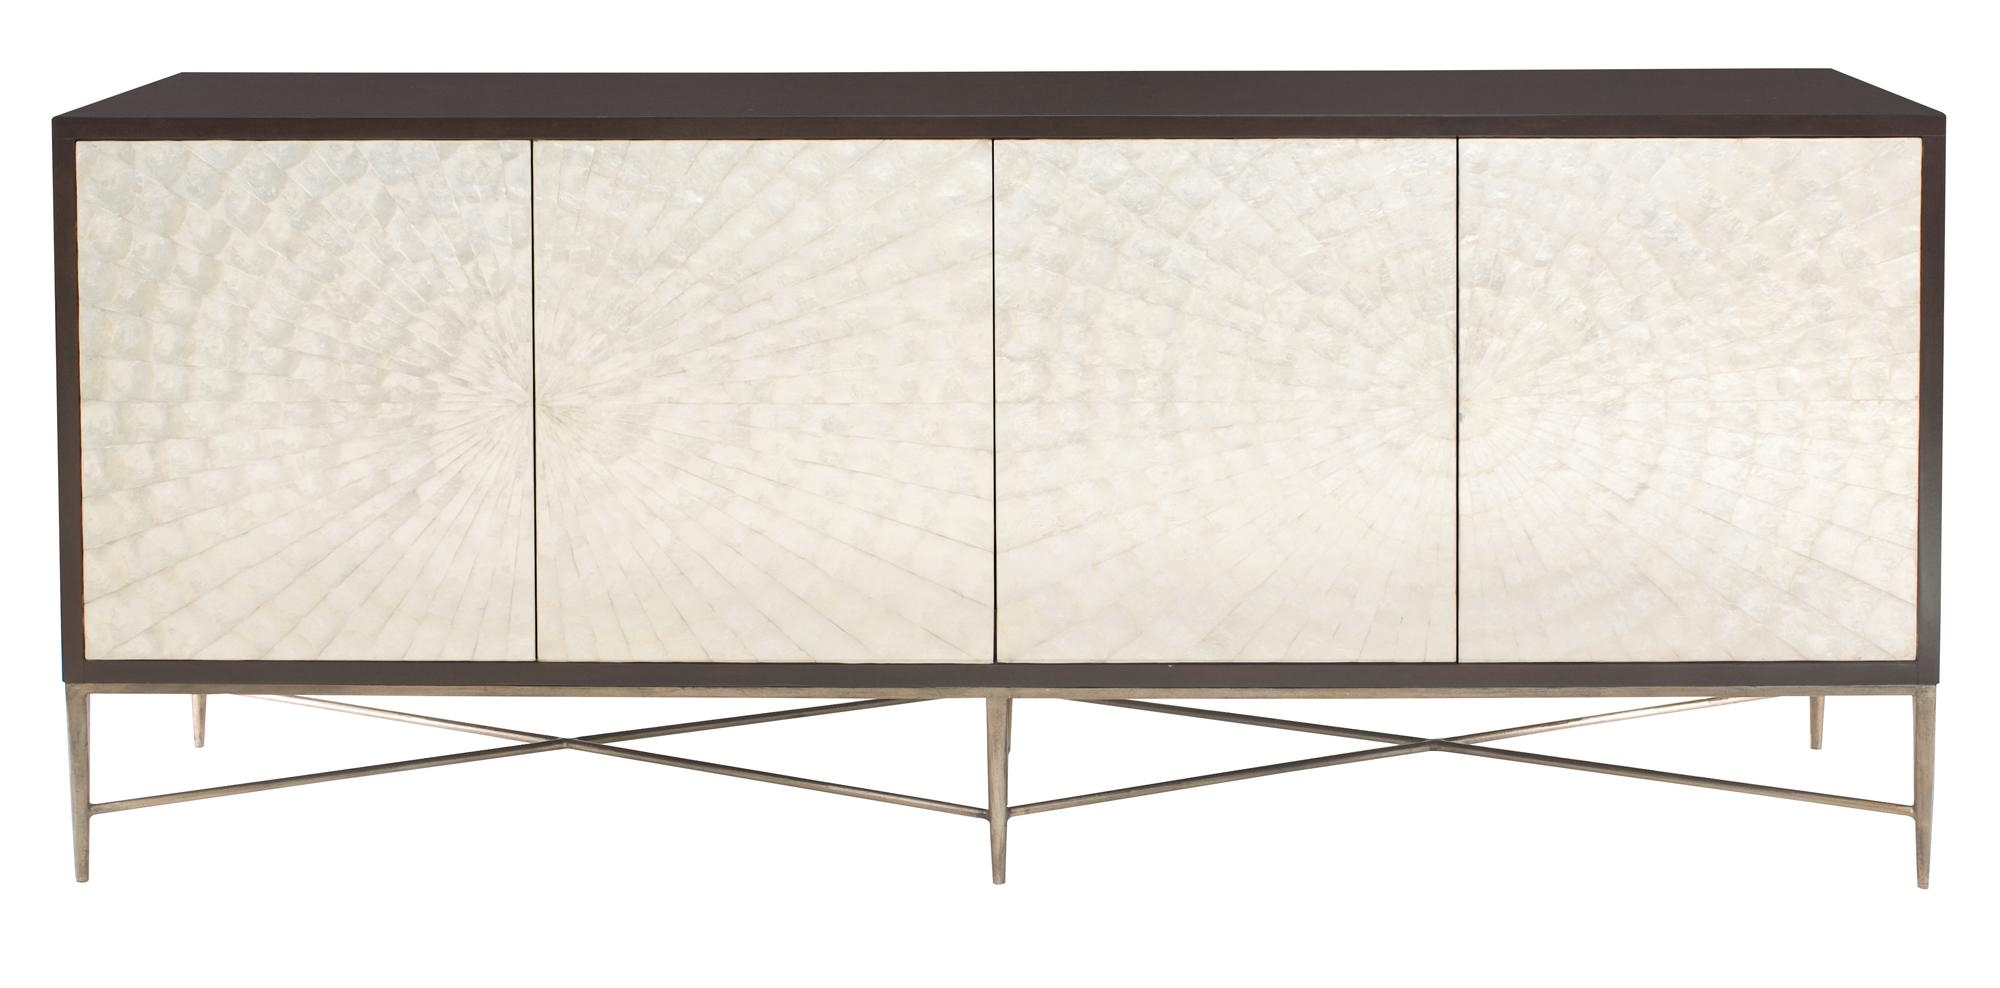 Console Tables | Bernhardt Regarding Bernhardt Console Tables (Image 14 of 20)